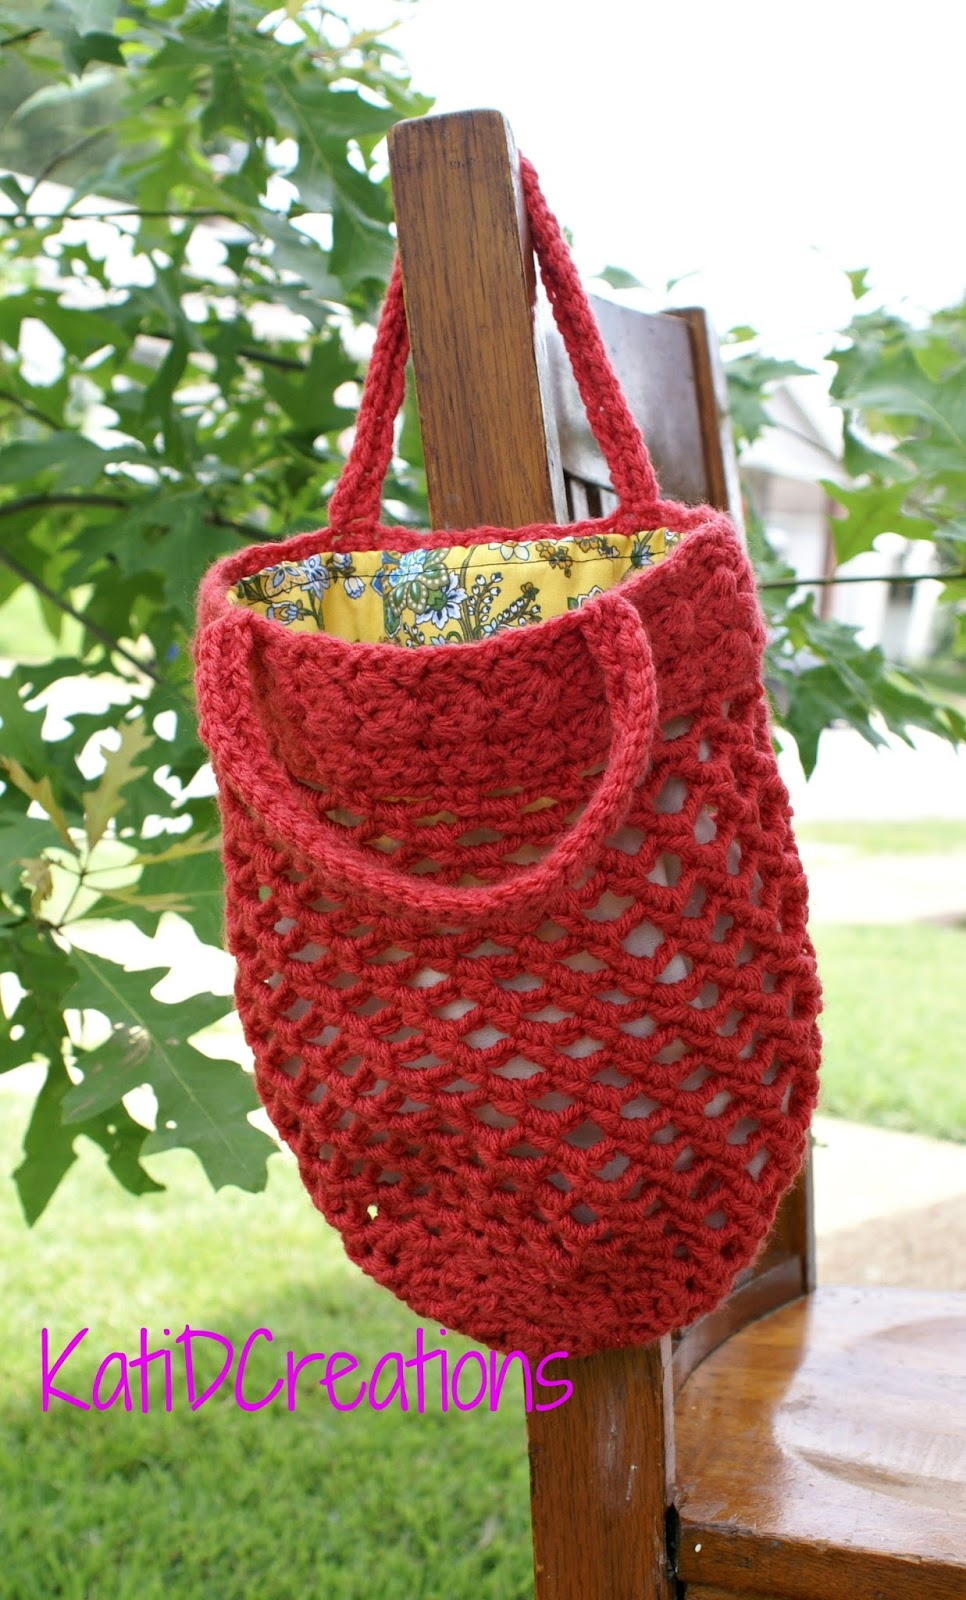 Fiber Flux: Pretty Purses! 20+ Free Crochet Purse Patterns...